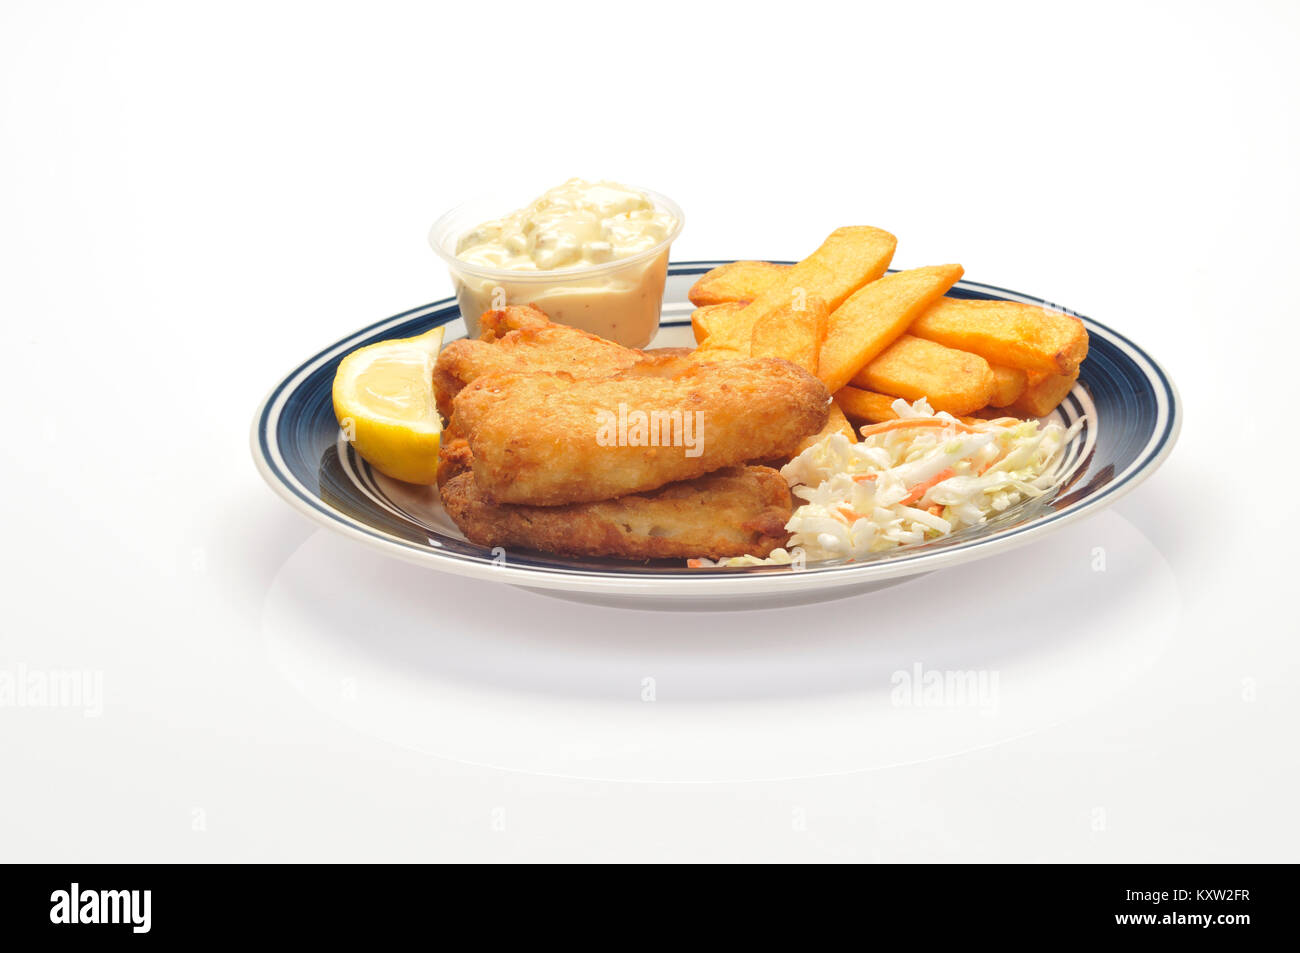 Fried fish and chips with a wedge of lemon, coleslaw and tartar sauce on blue and white plate on white background - Stock Image